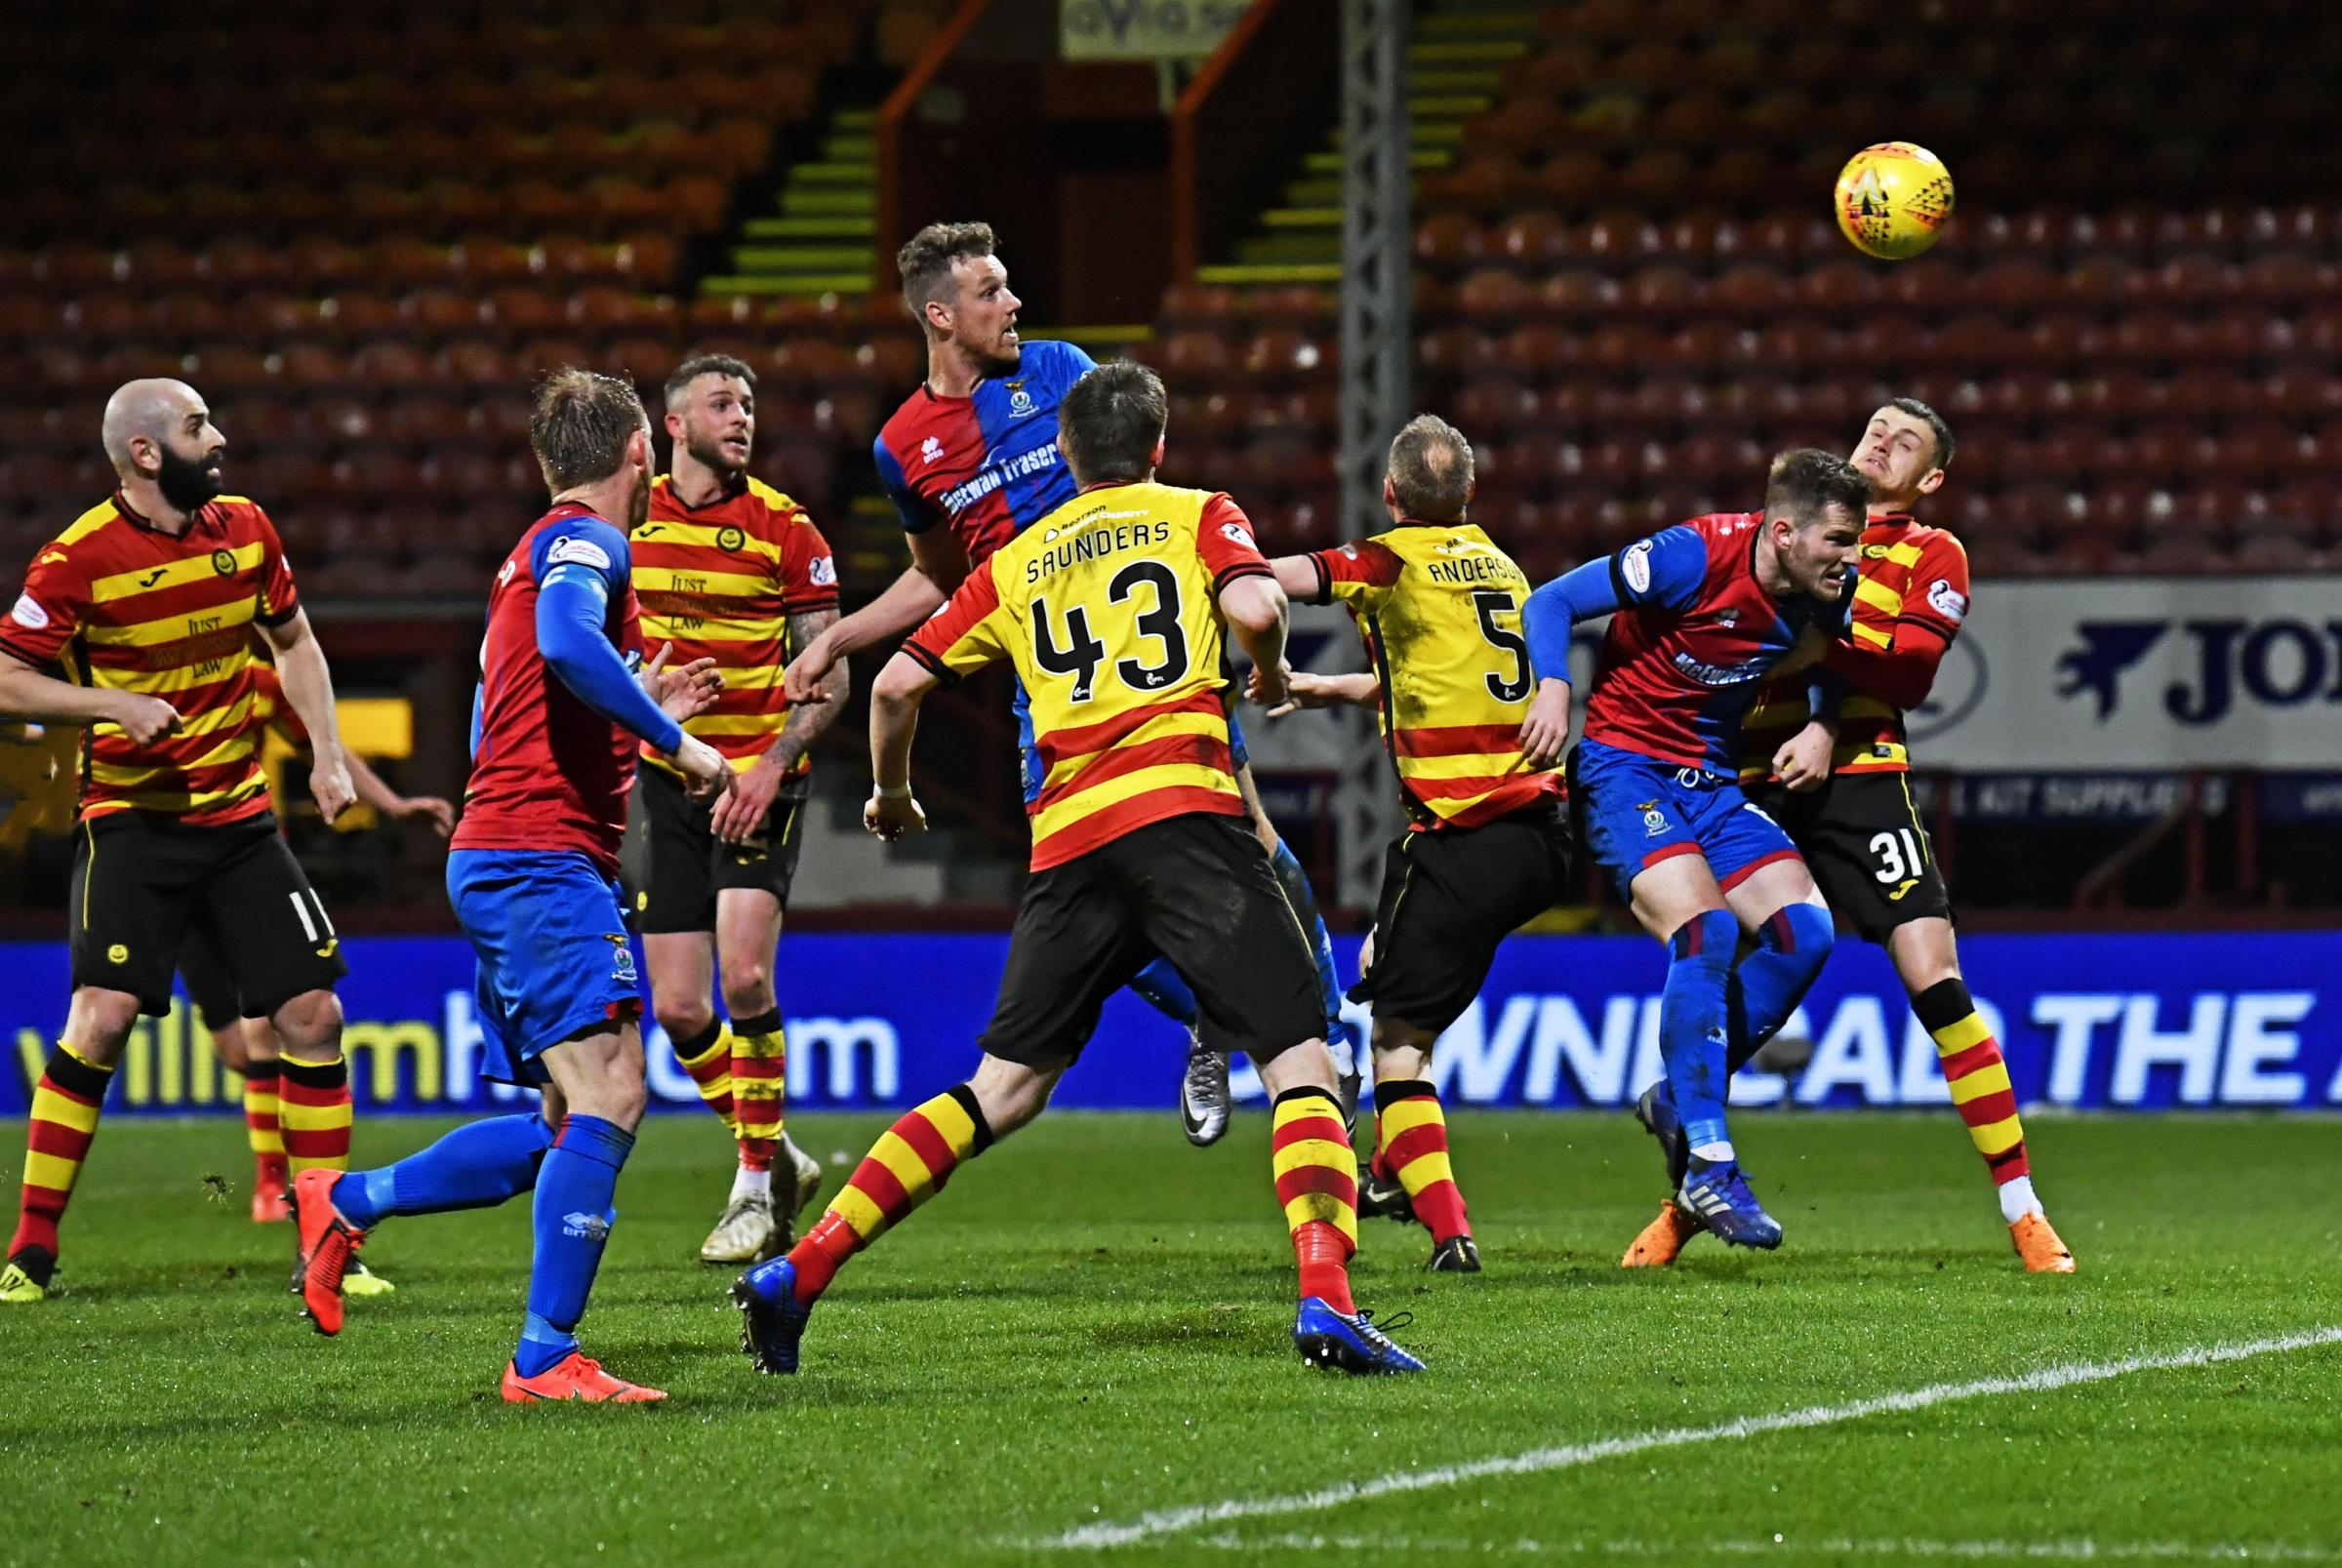 Partick Thistle learn Championship fixtures for 2019/20 season